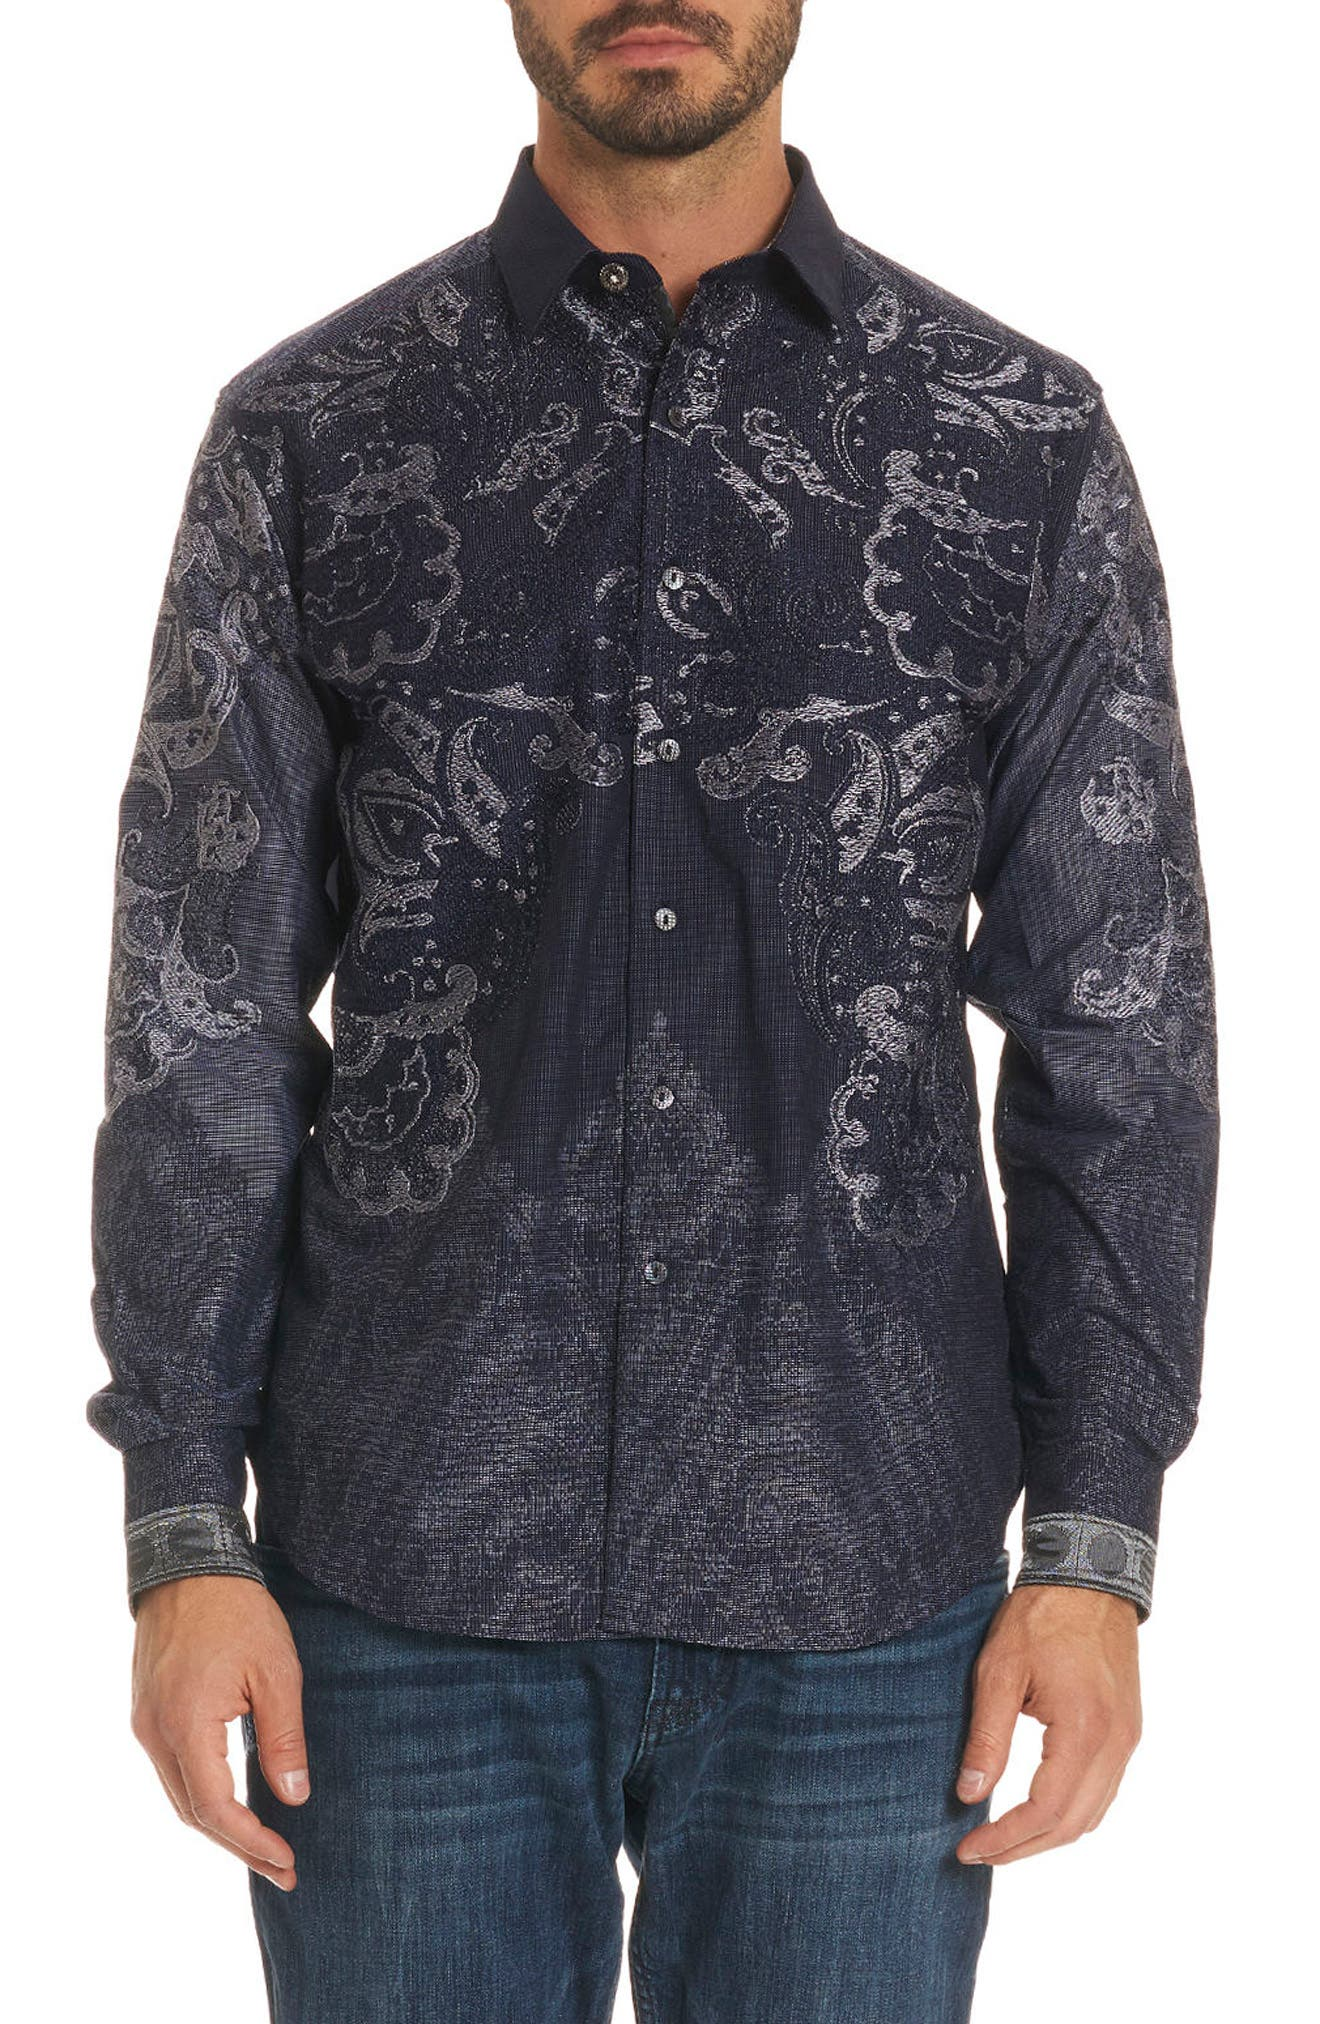 Alternate Image 1 Selected - Robert Graham The Cooley Limited Edition Classic Fit Sport Shirt